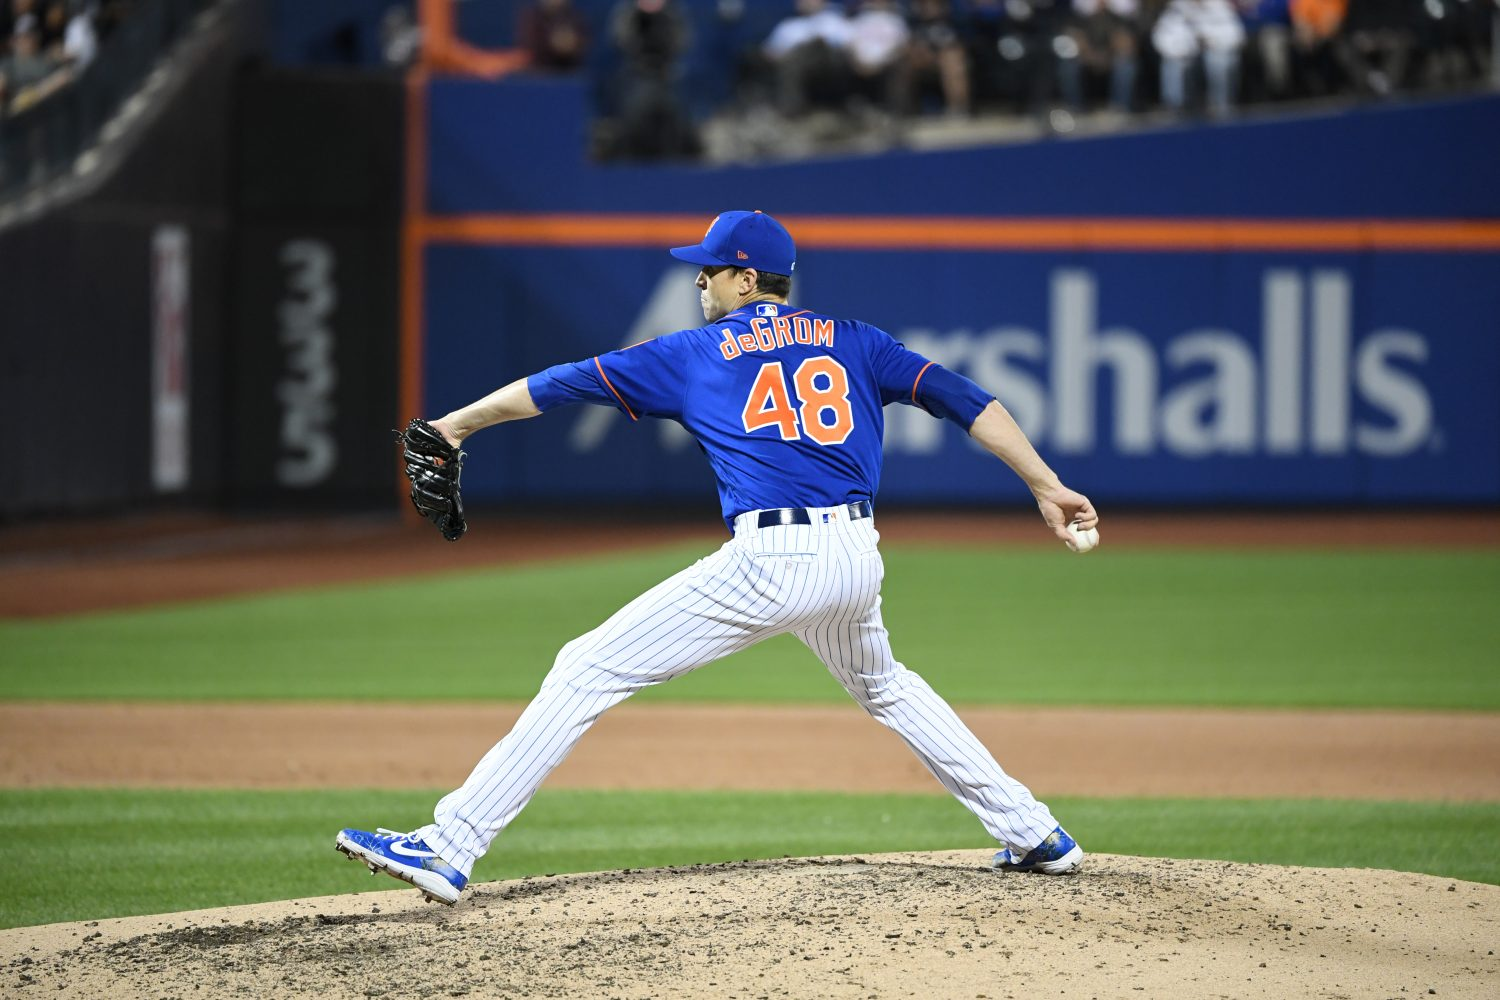 Jacob deGrom Winds Up for Pitch